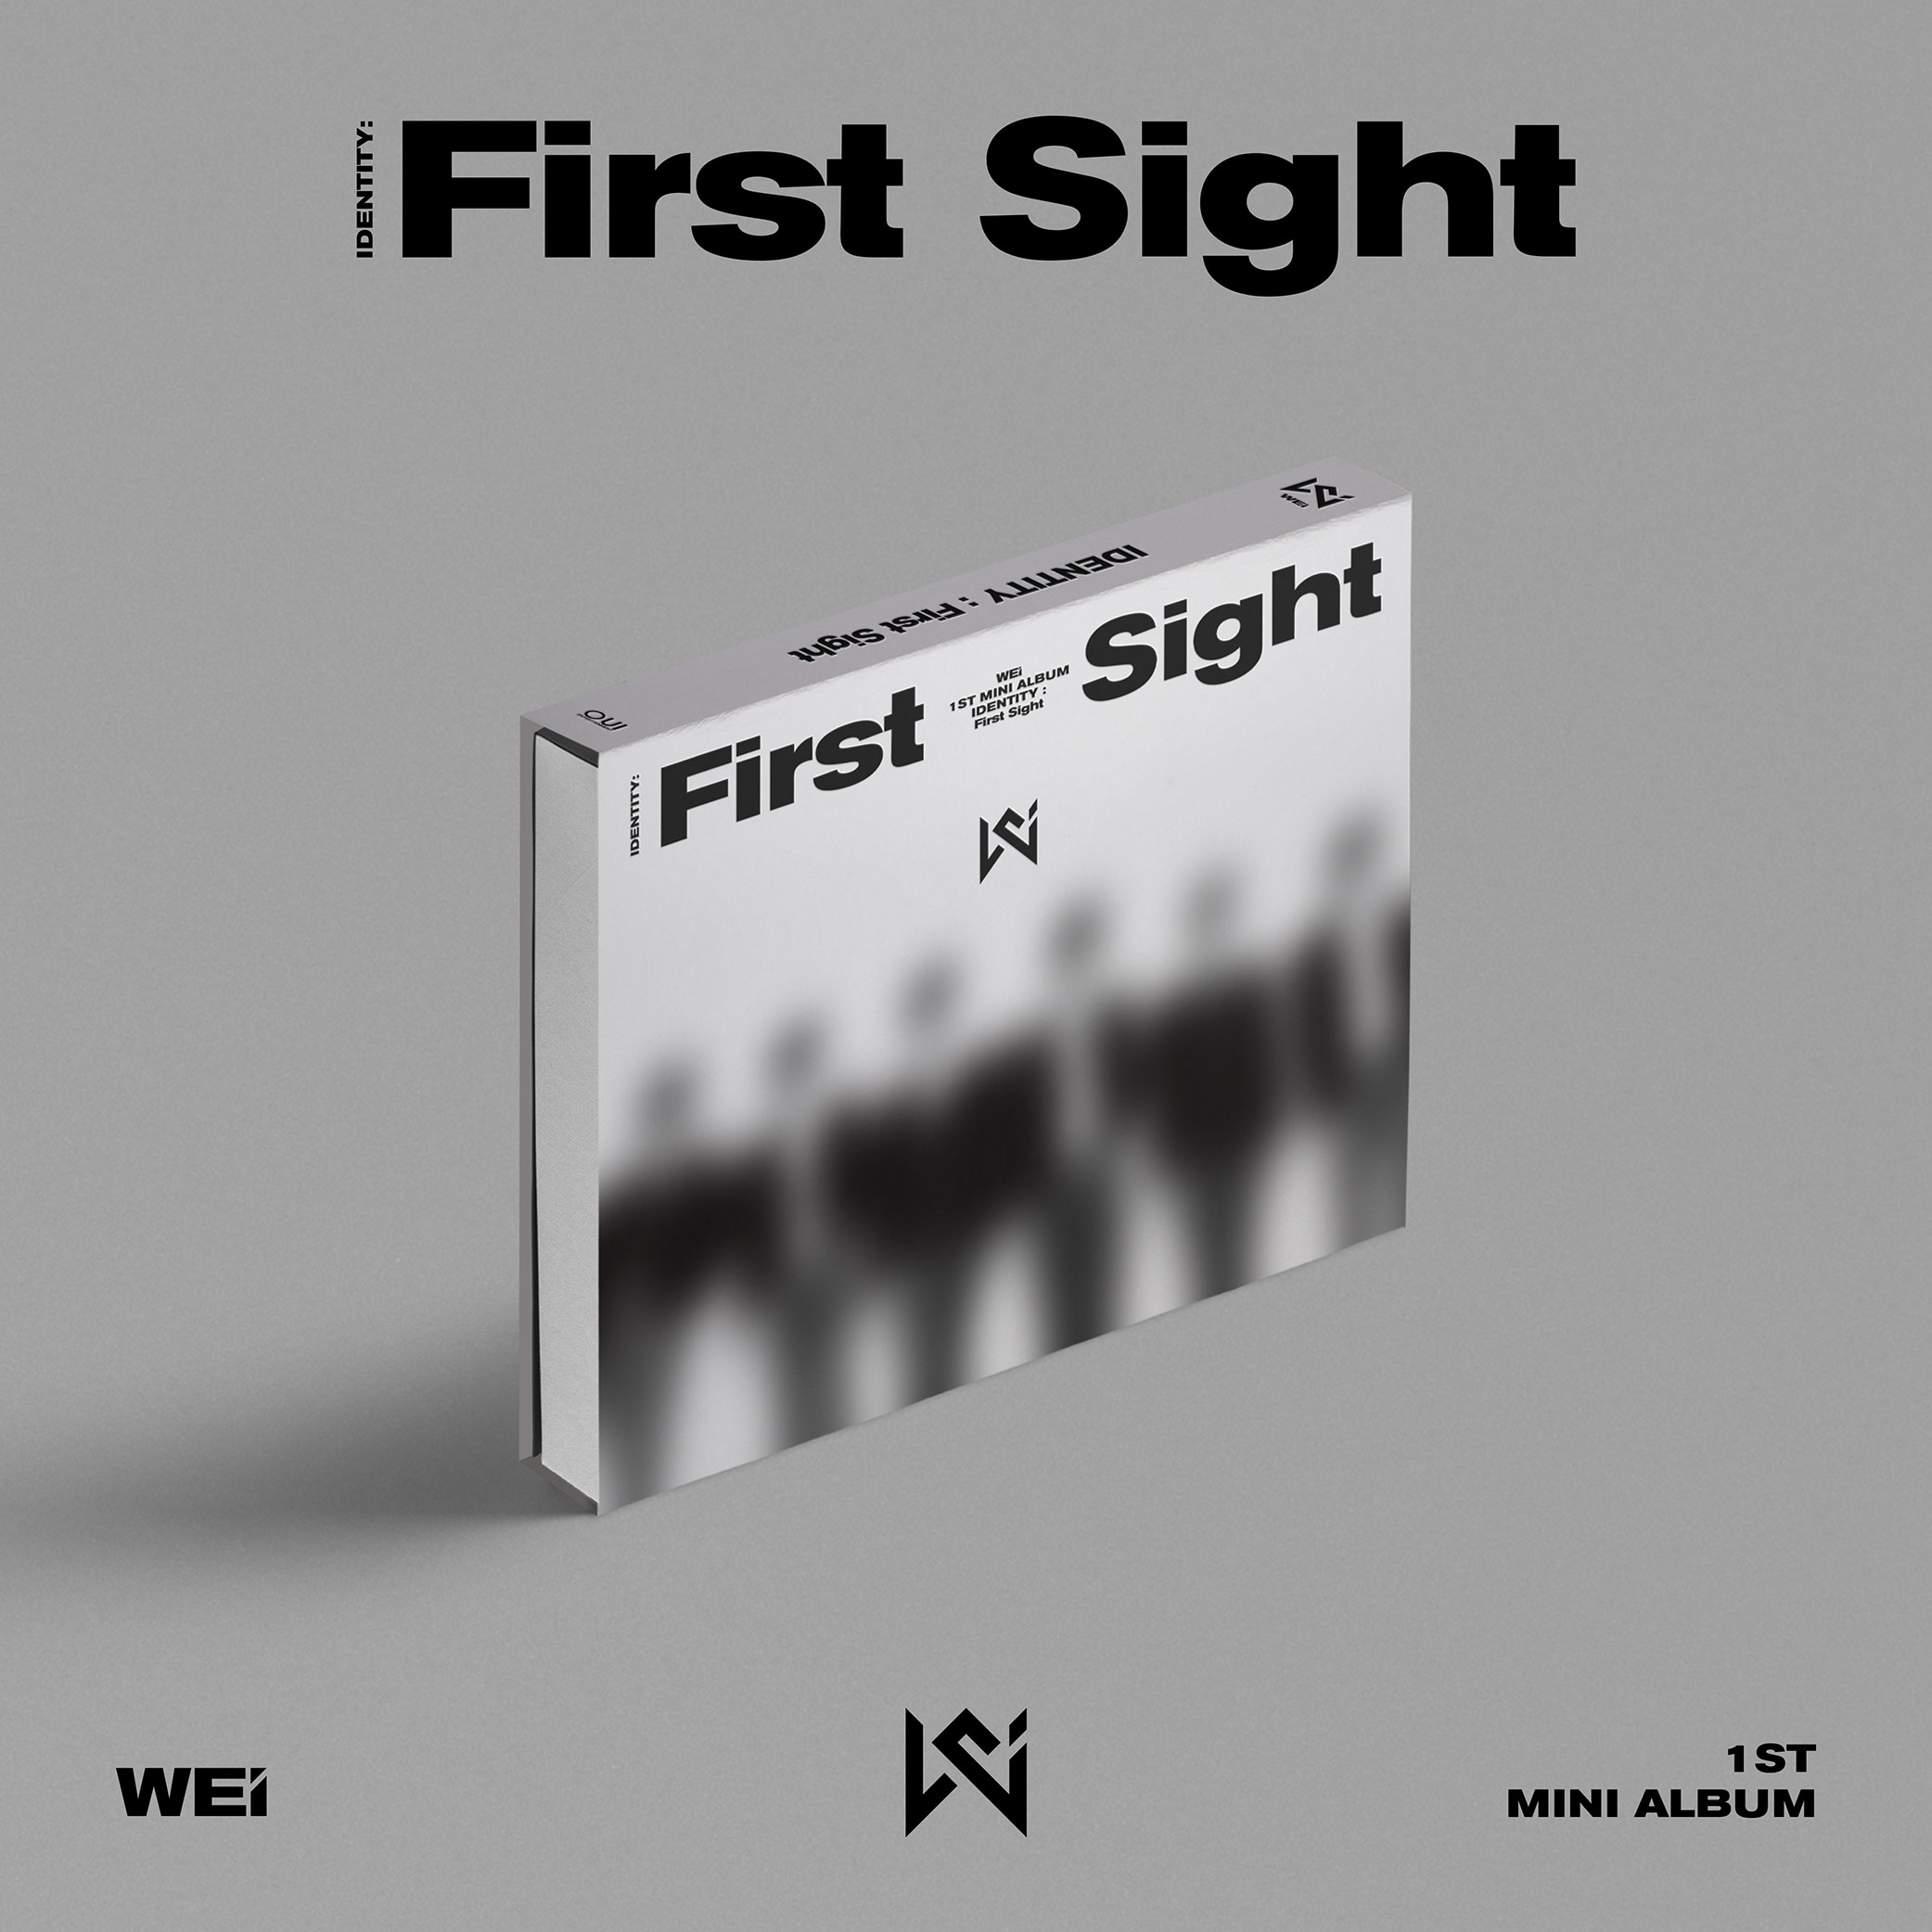 WEi - Mini Album Vol. 1 [IDENTITY : First Sight] (i Ver.)케이팝스토어(kpop store)